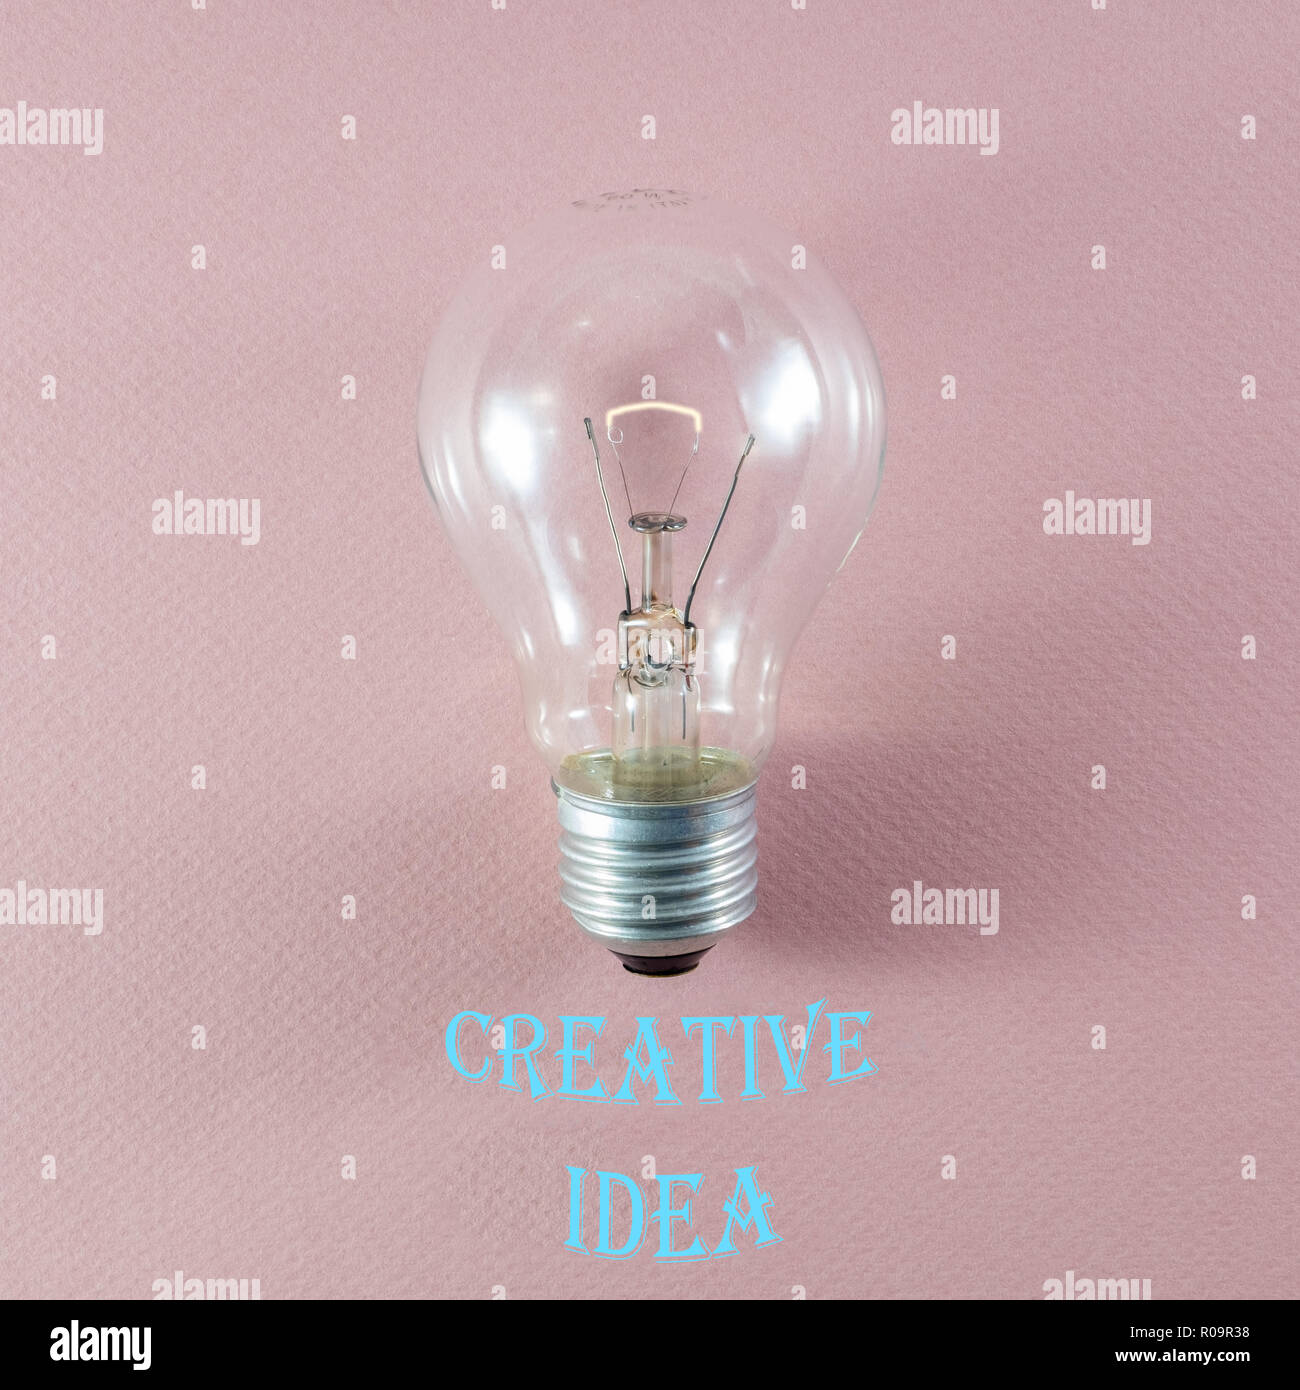 Creative idea and innovation concept via lit bulb on pink background and relevant text in modern font Stock Photo